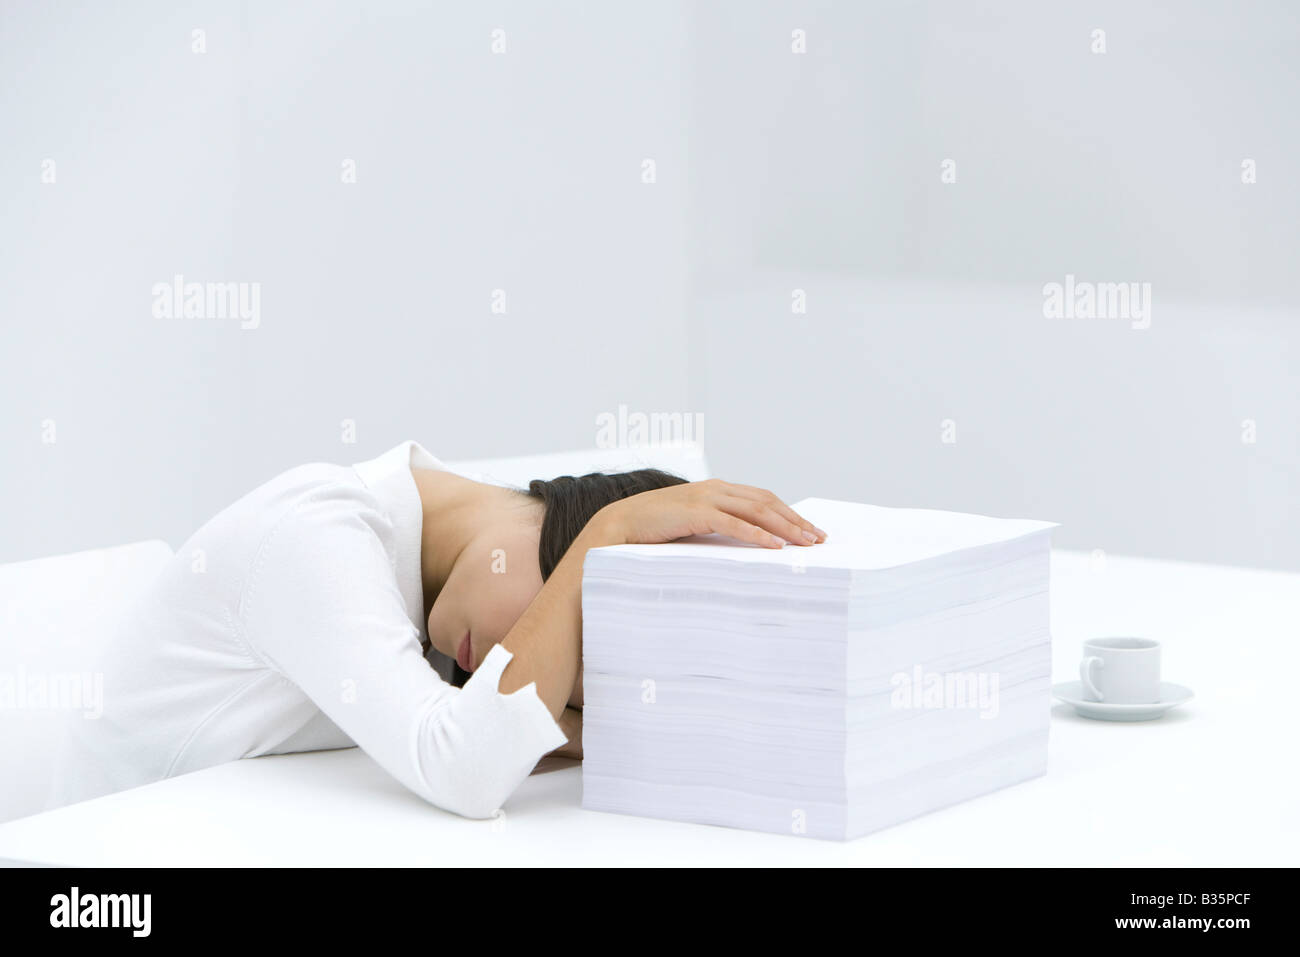 Woman with head down on desk, arm obscuring face, hand on top of stack of paper - Stock Image